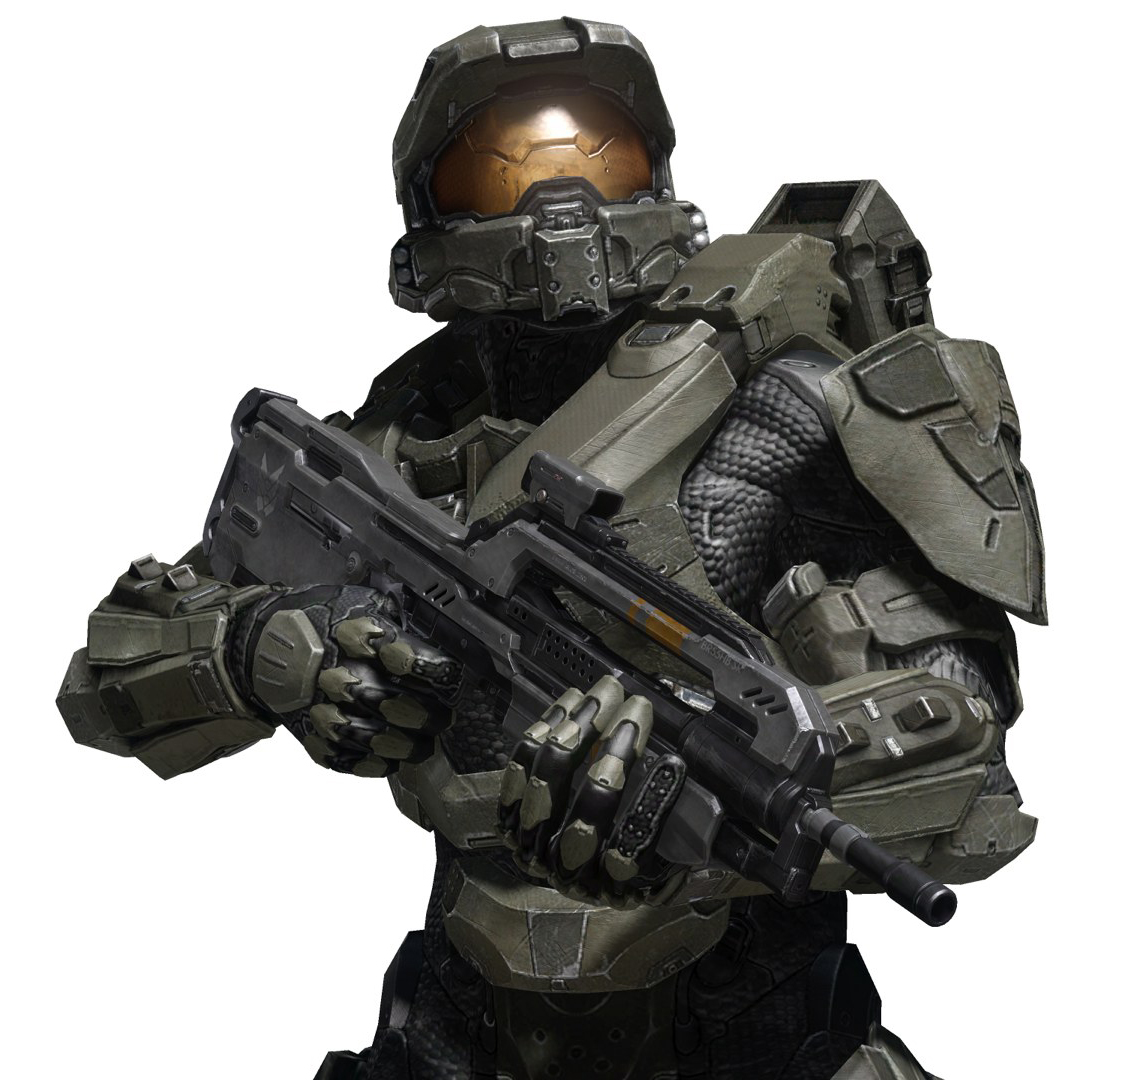 Halo-4-Master-Chief-halo-30585561-1920-1080.jpg